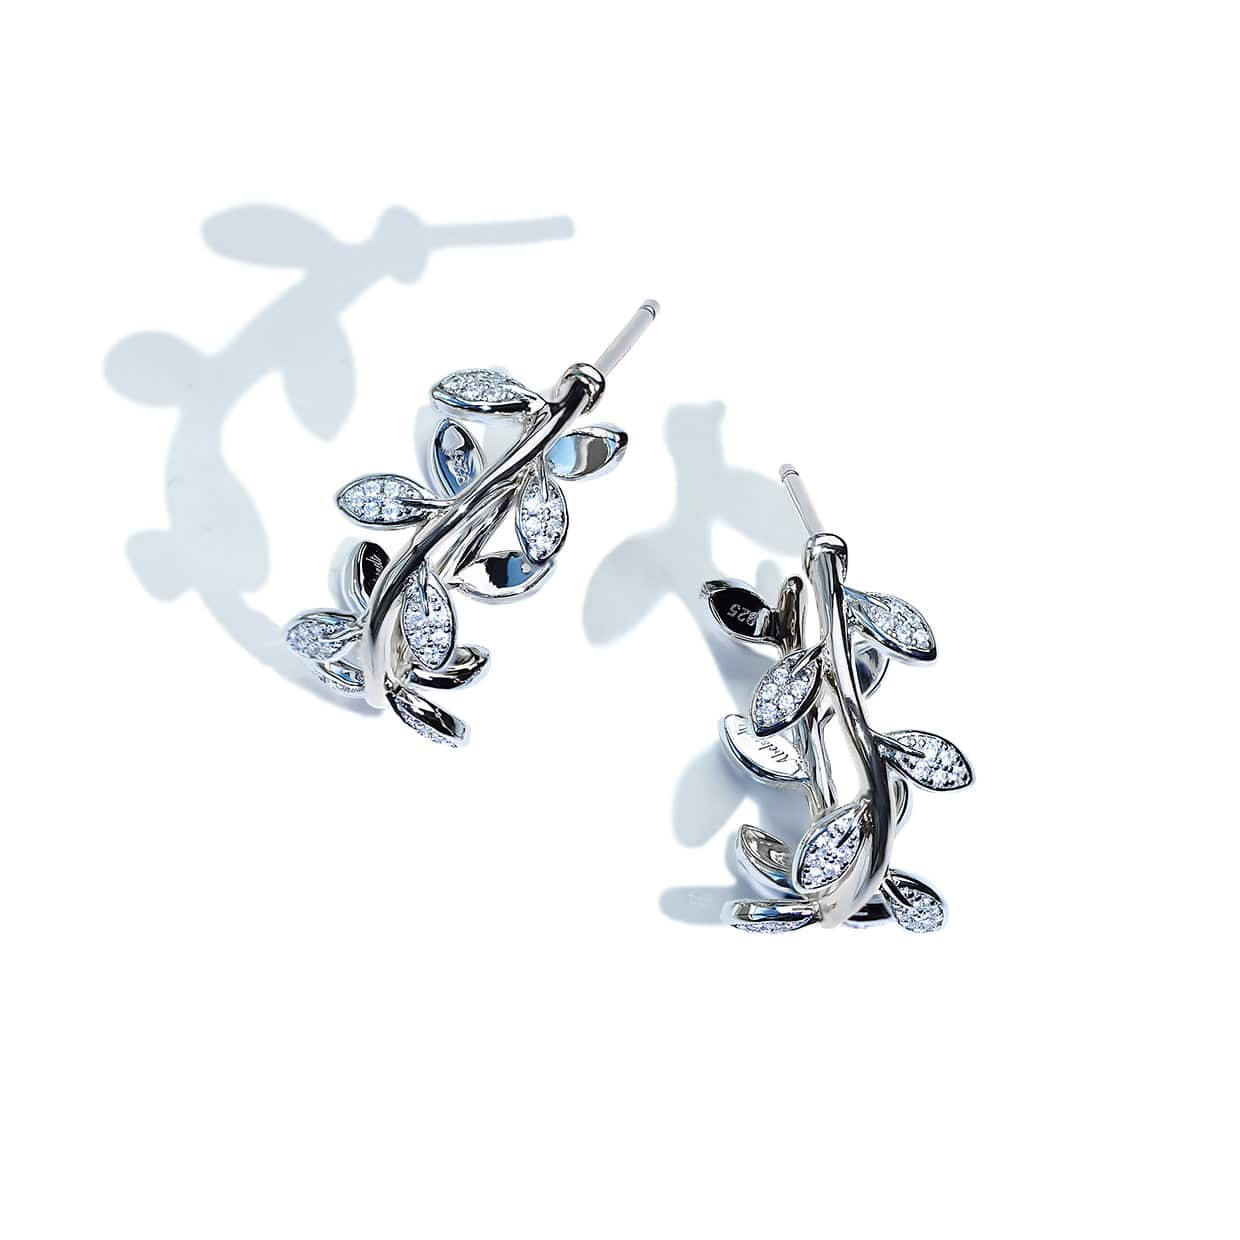 Flora Silver Leaf Hoop Earrings - Abelstedt